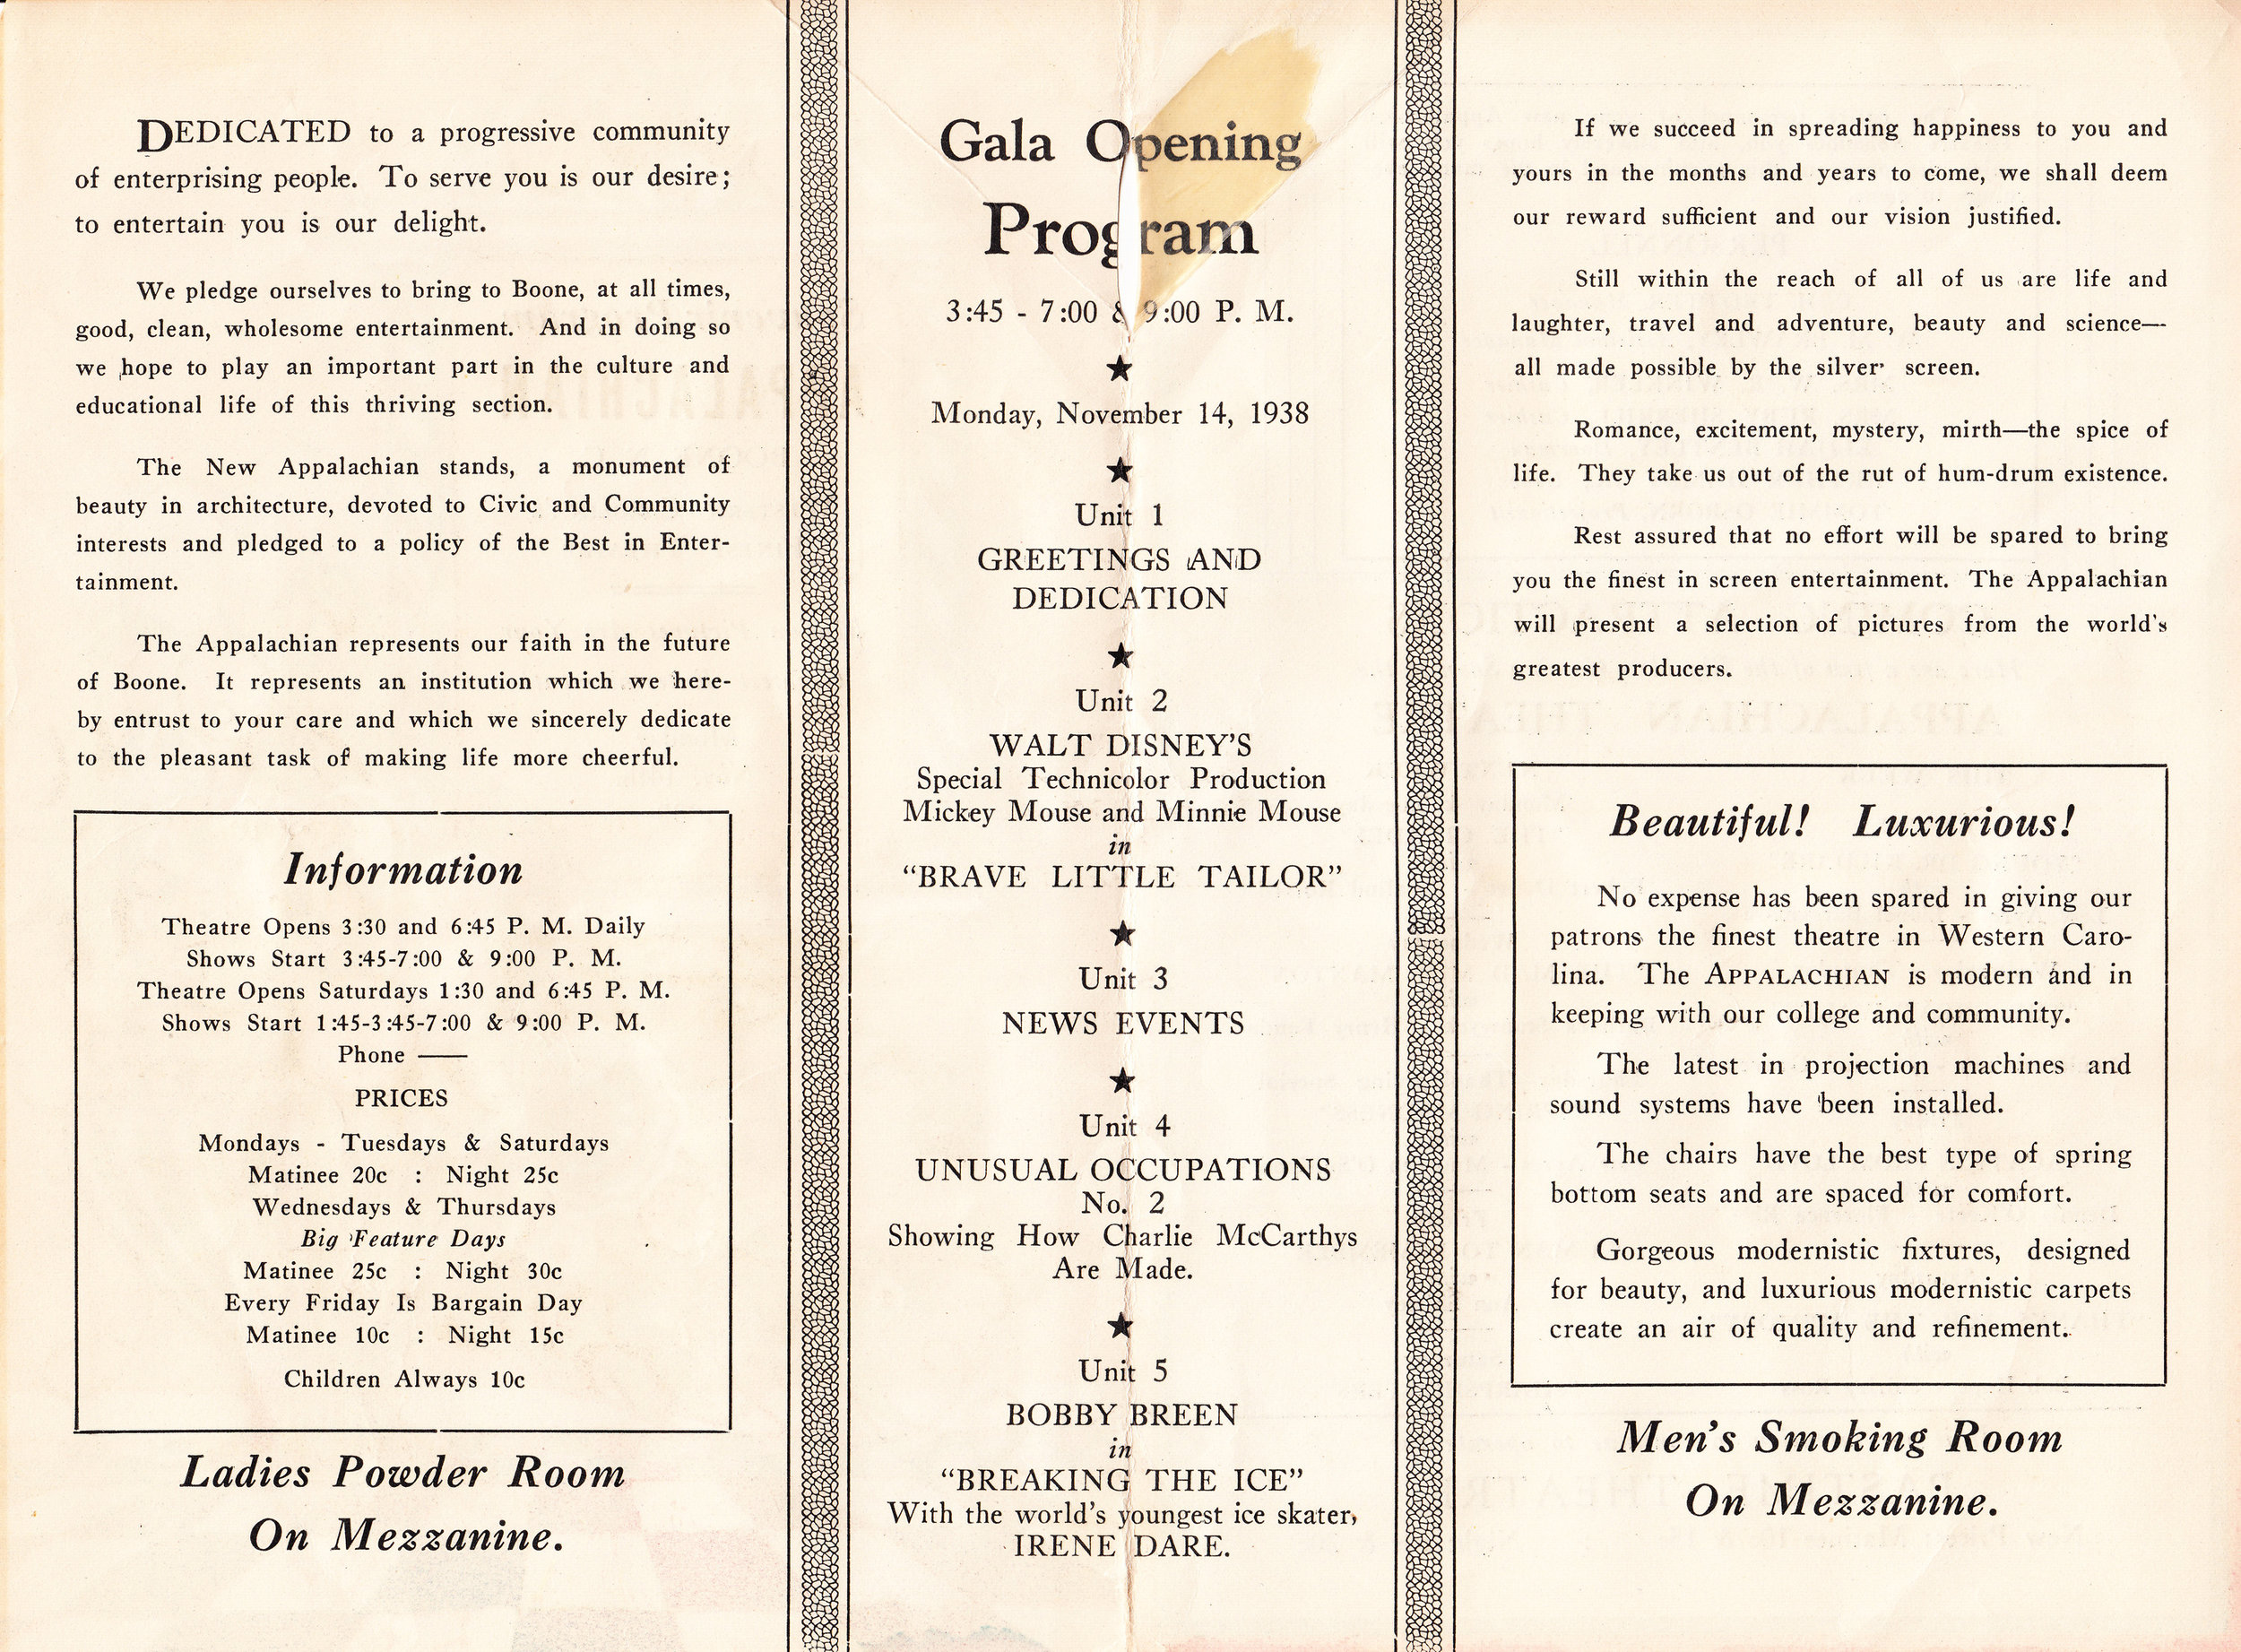 Inside pages from the Souvenir Program for the Appalachian Theatre's Gala Opening, November 14, 1938.